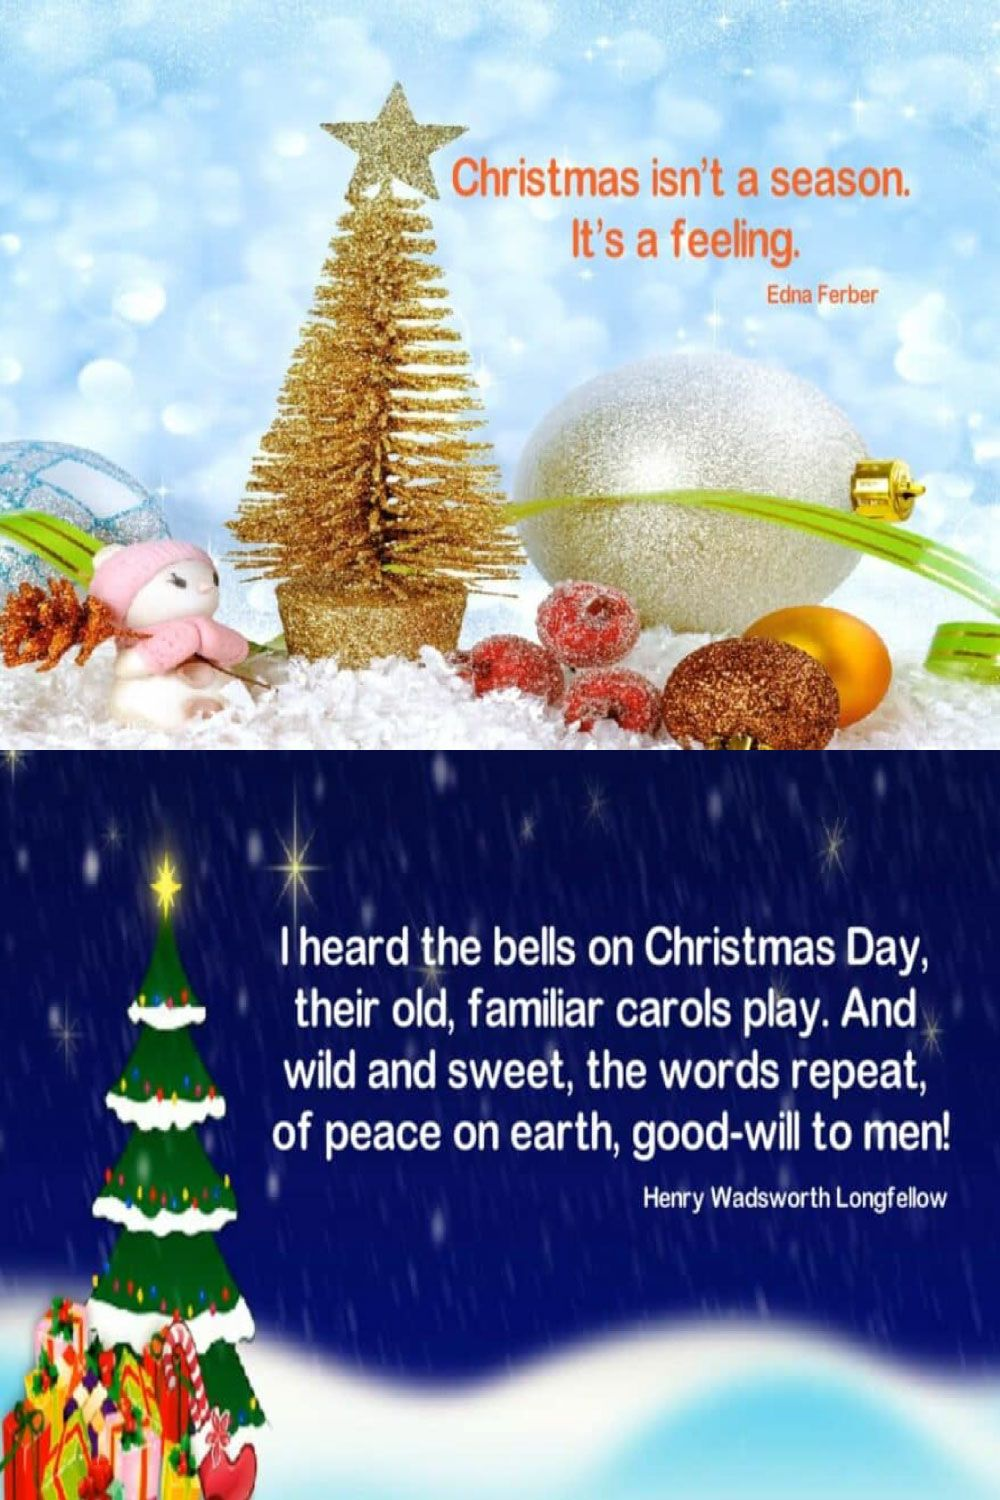 21 Short Christmas Quotes Inspiring Quotes In 2020 Christmas Quotes For Friends Short Christmas Quotes Best Christmas Quotes